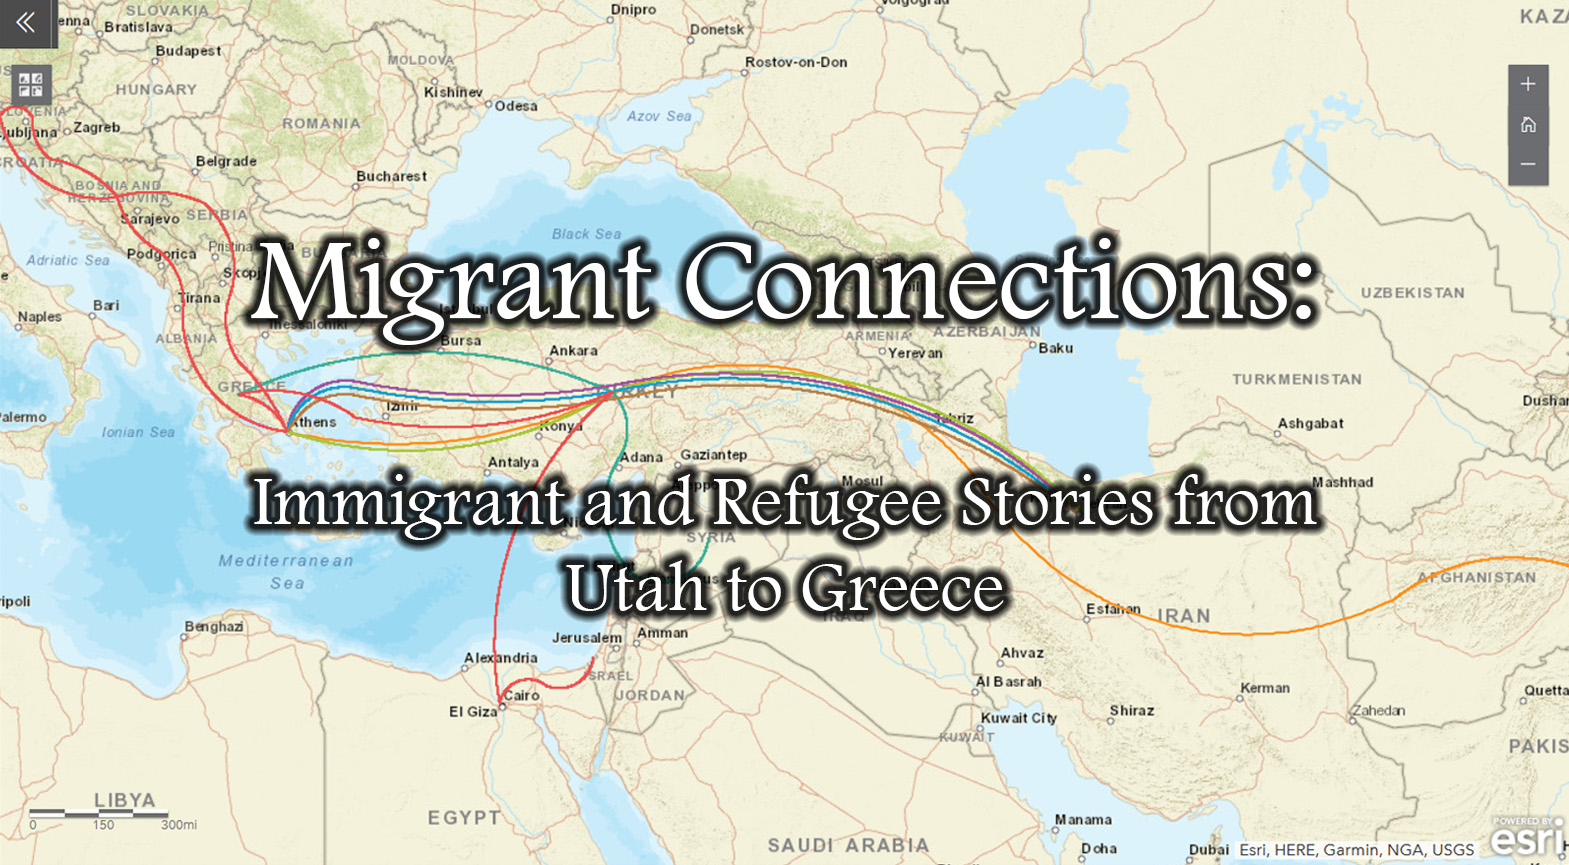 Image depicting routes described in interviews associated with the Migrant Connections project